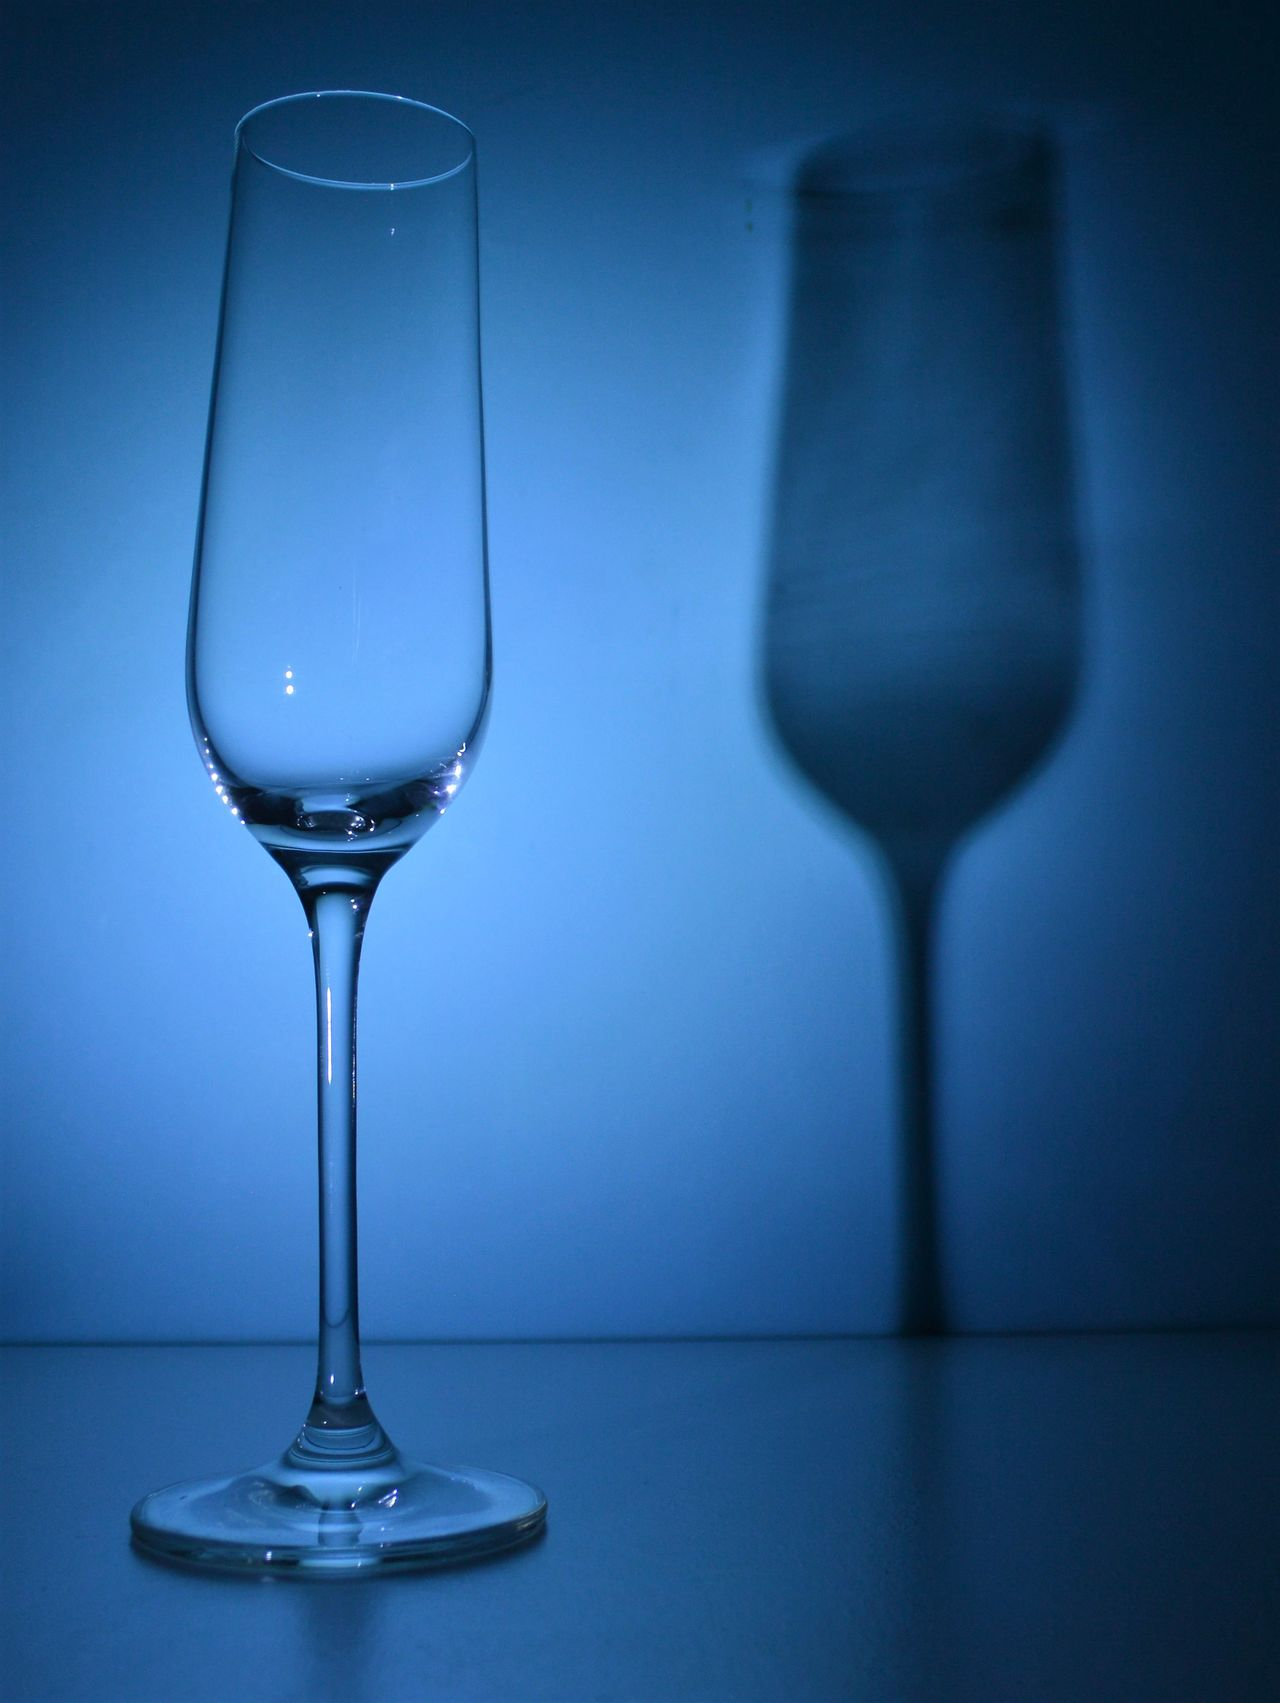 First try at my photography course project on different types of lighting📸🍷 Blue Bright Lighting Drinking Glass Indoors  Photography Project Rainy Day Photography Reflection Shadow Table Wine Glass EyeEmNewHere Wine Not